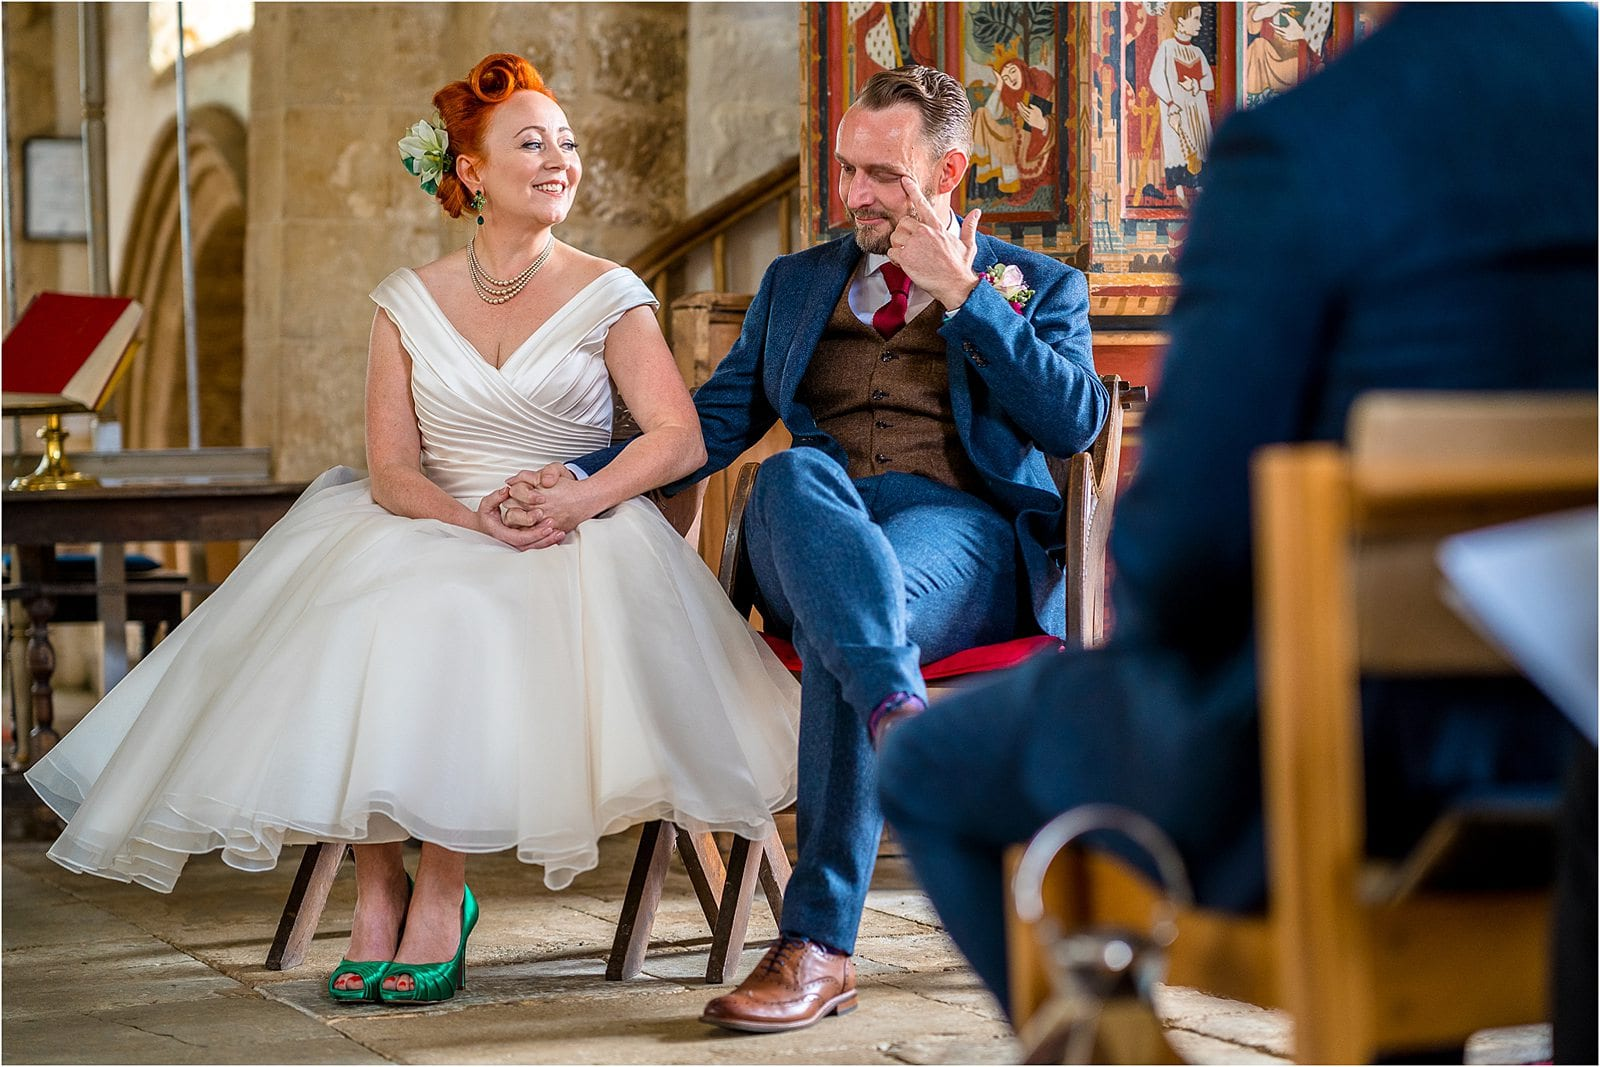 bride smiling at groom whilst he wipes a tear away - best wedding photography in warwickshire 2019